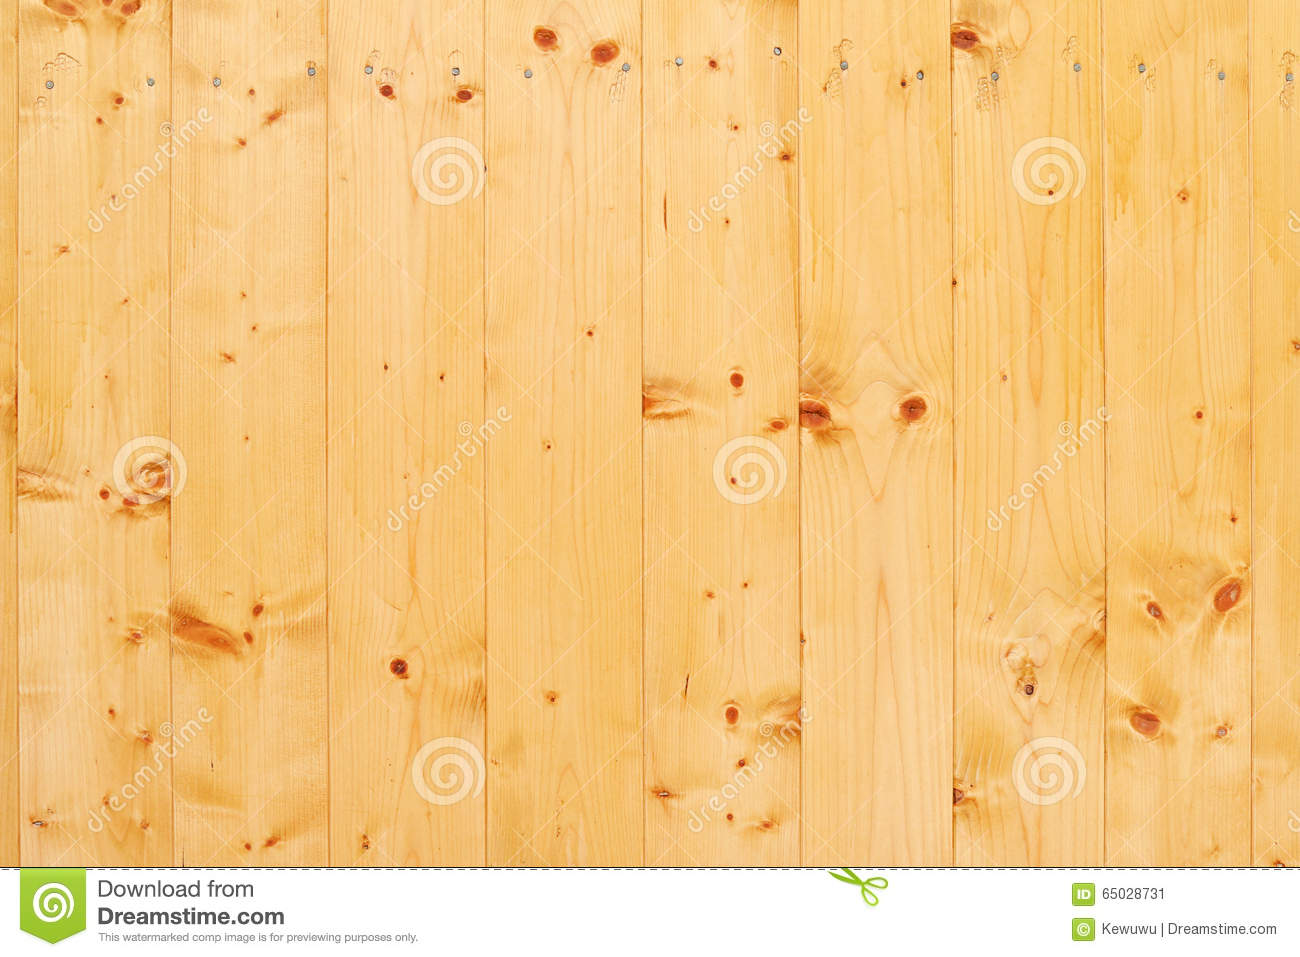 Background Of Light Wooden Wall In Yellow Color Stock Image - Image ...